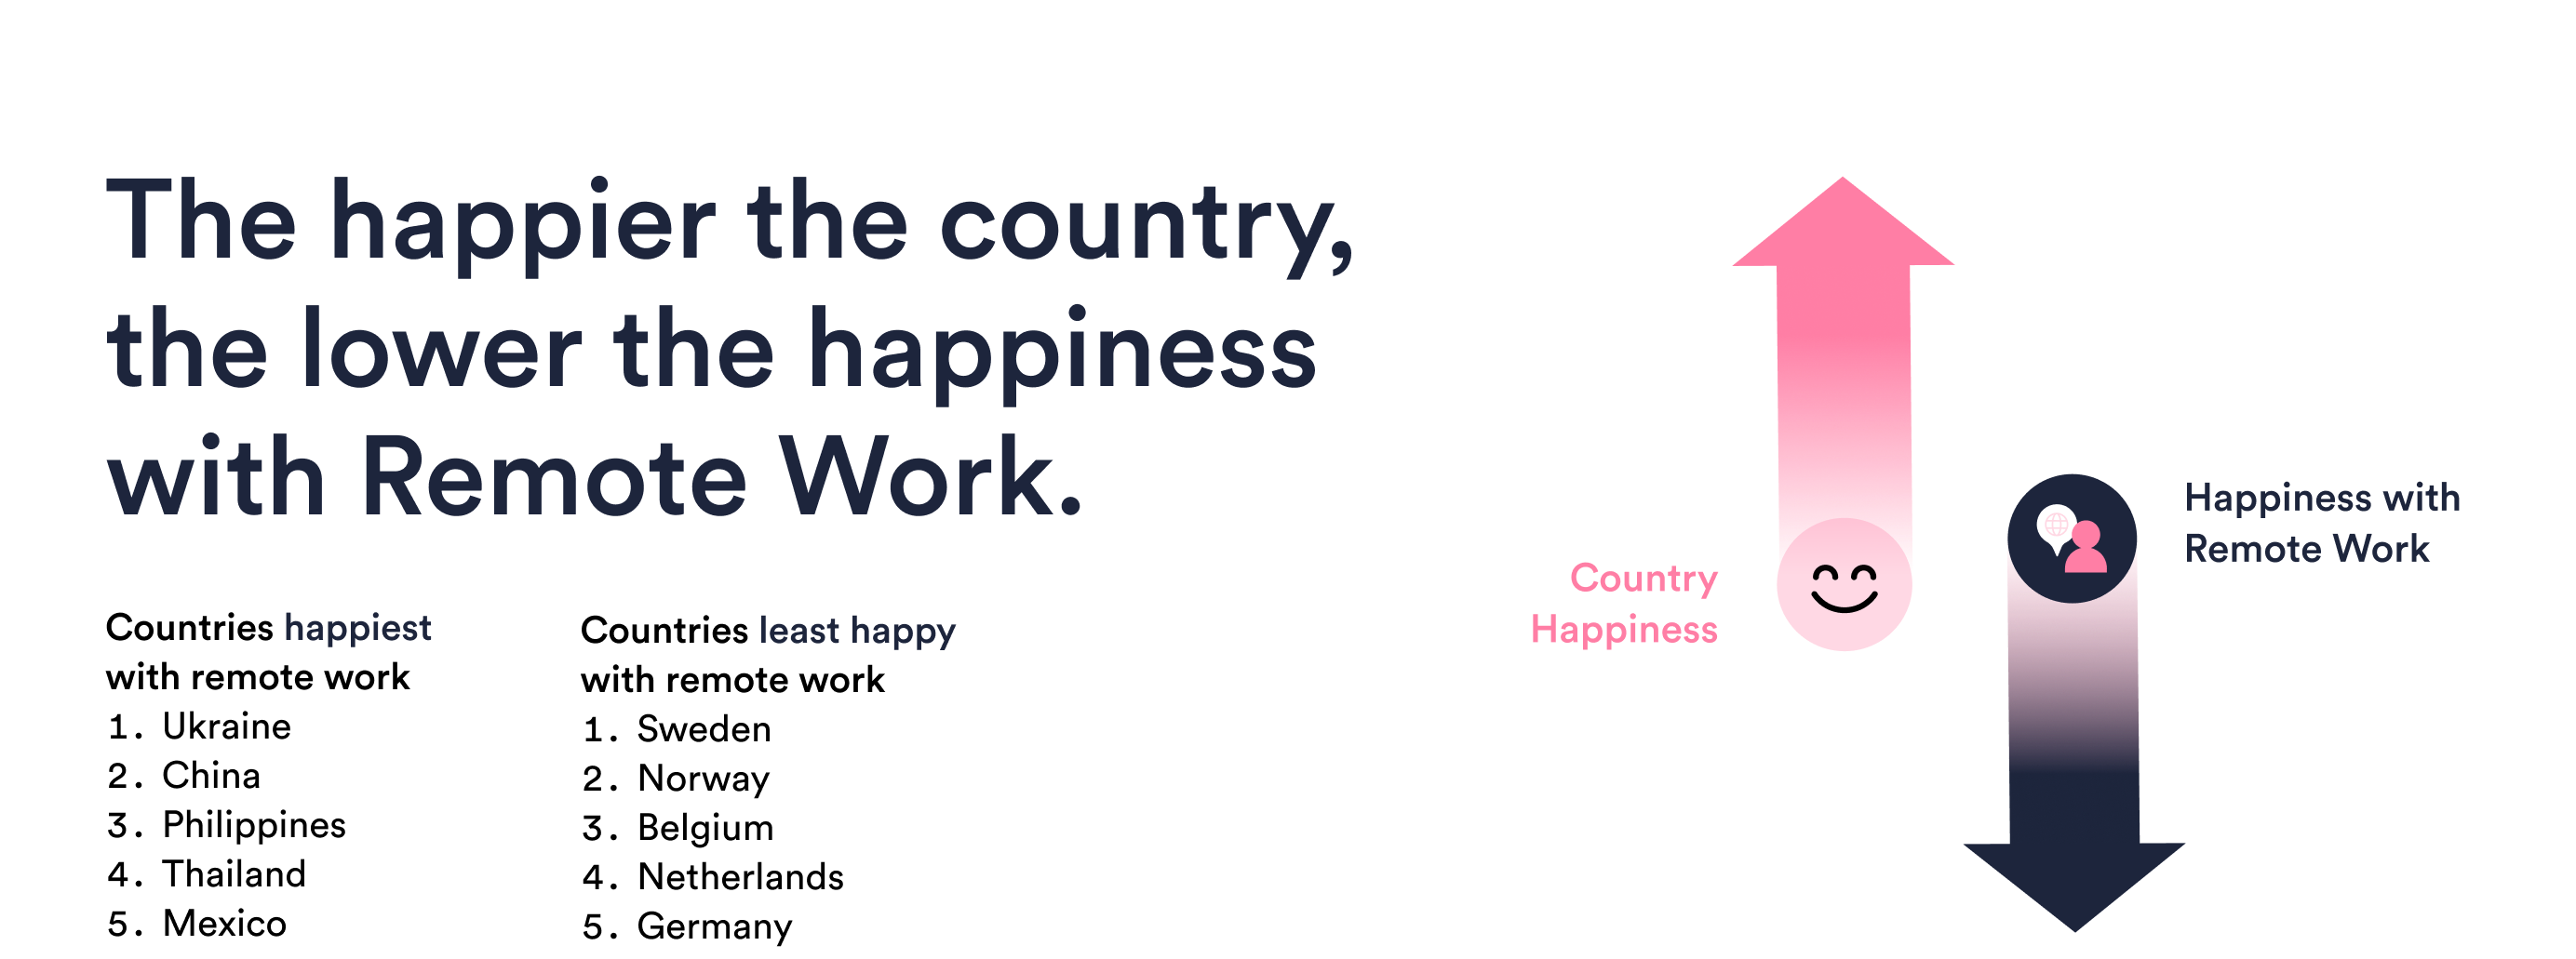 The happier the country, the lower the happiness with Remote Work